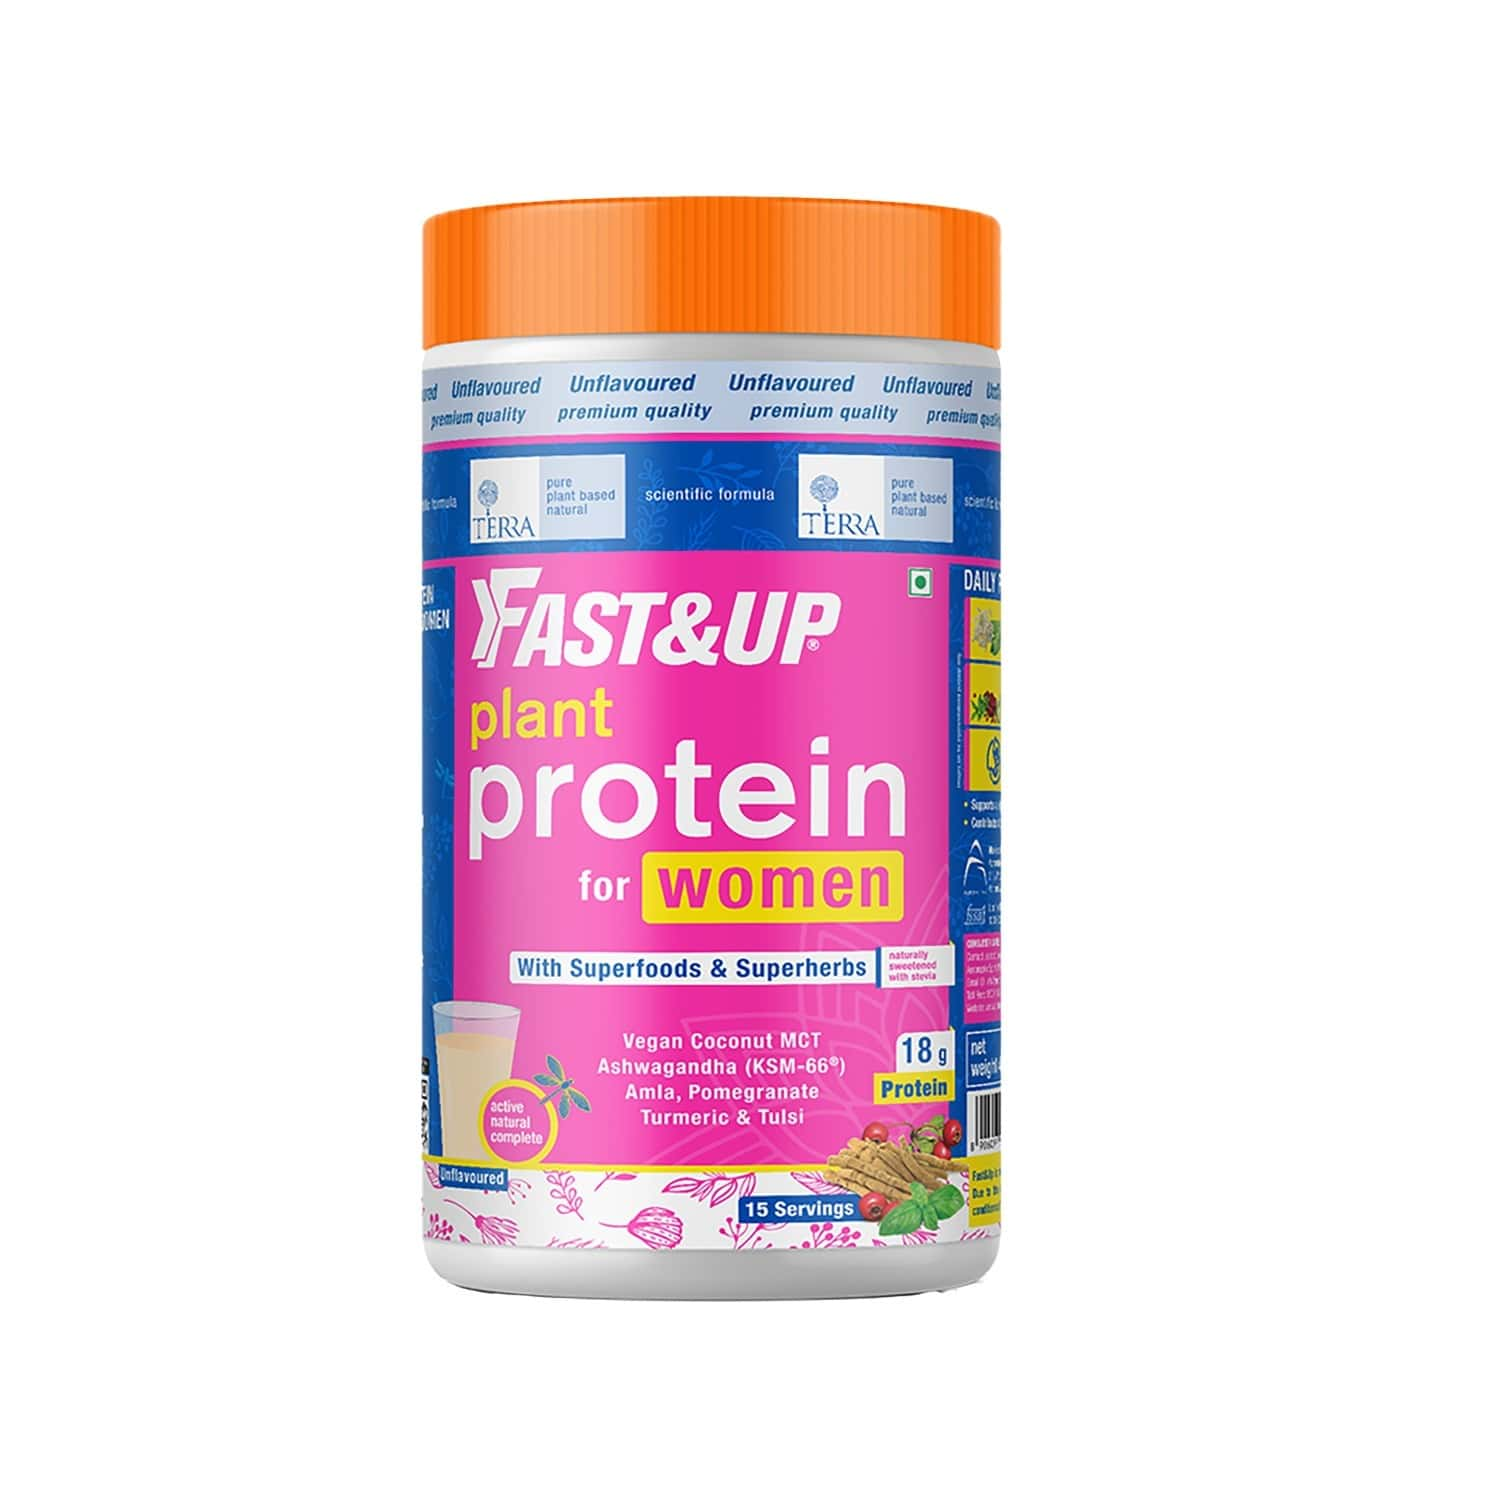 Fast & Up Terra Plant Protein For Women - Superfood And Superherbs - Weight And Hormone Management - Better Skin And Complete Health - 15 Servings - Unflavoured - 450g